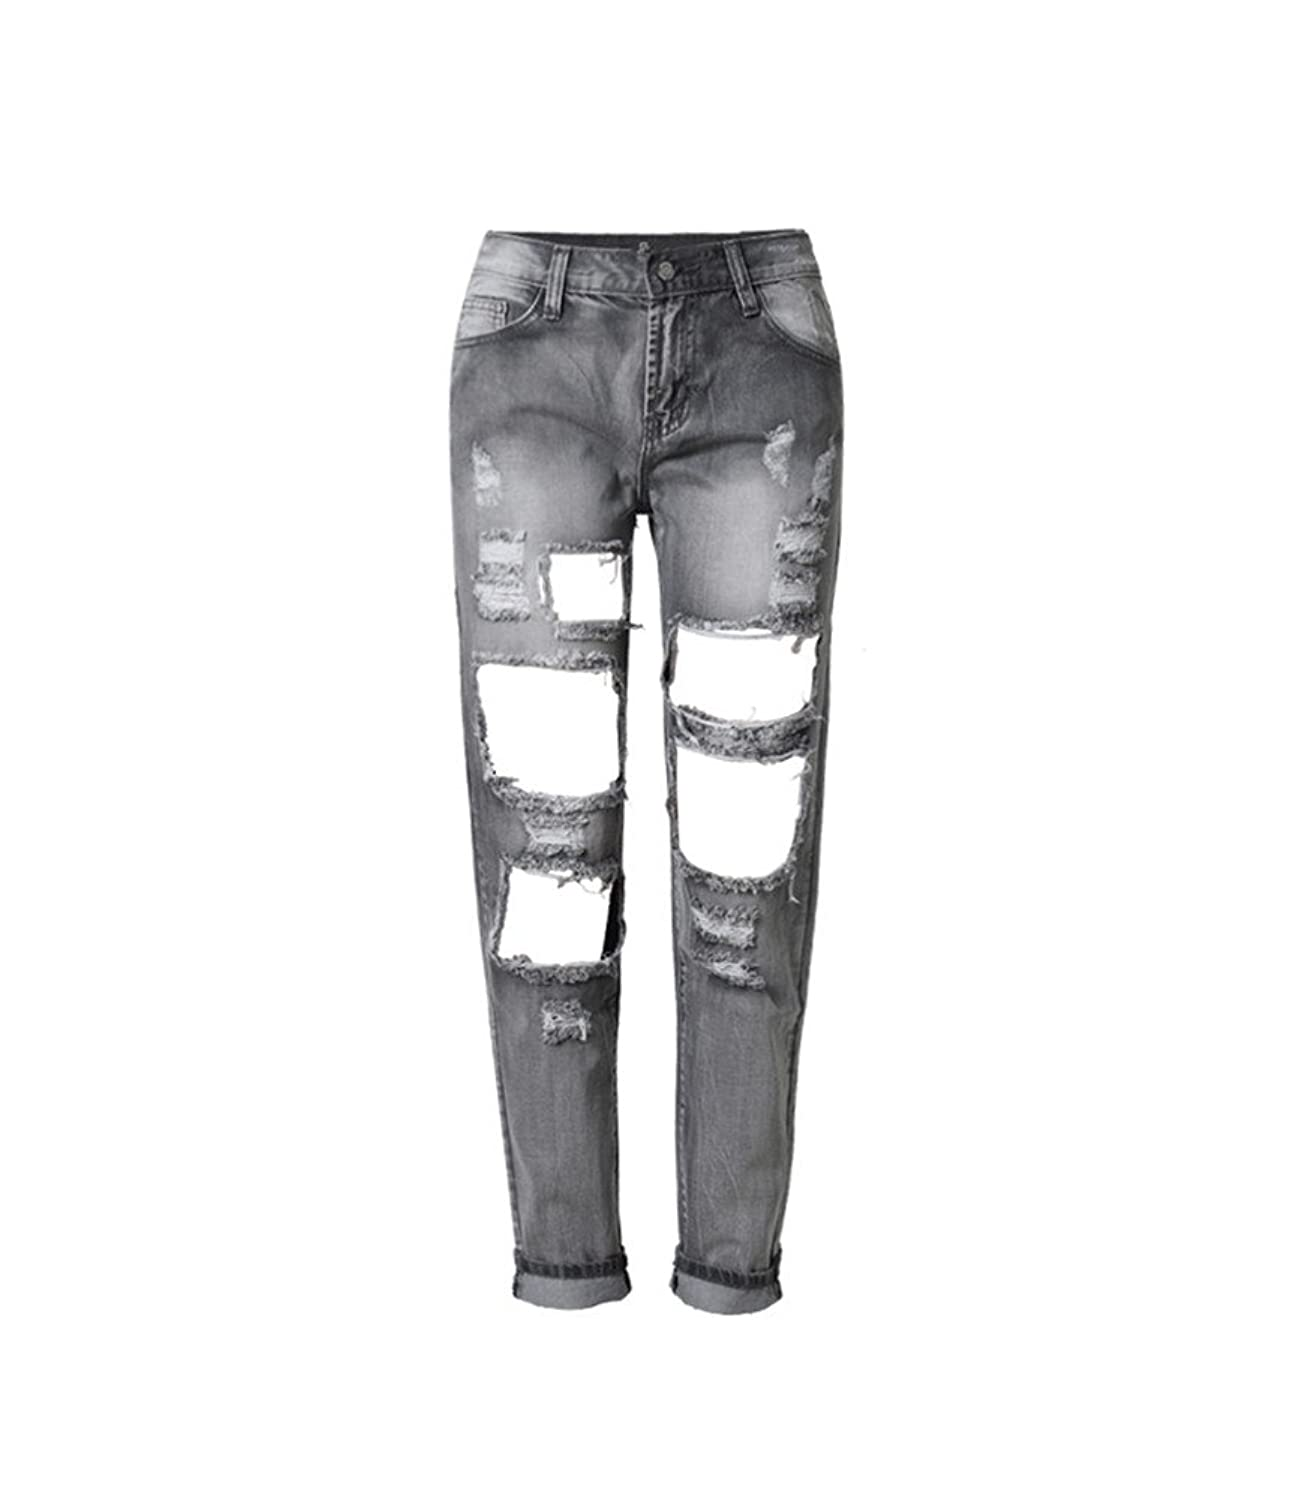 Women's Destroyed Ripped Holes Distressed Cuffed Hem Straight Jeans Grey